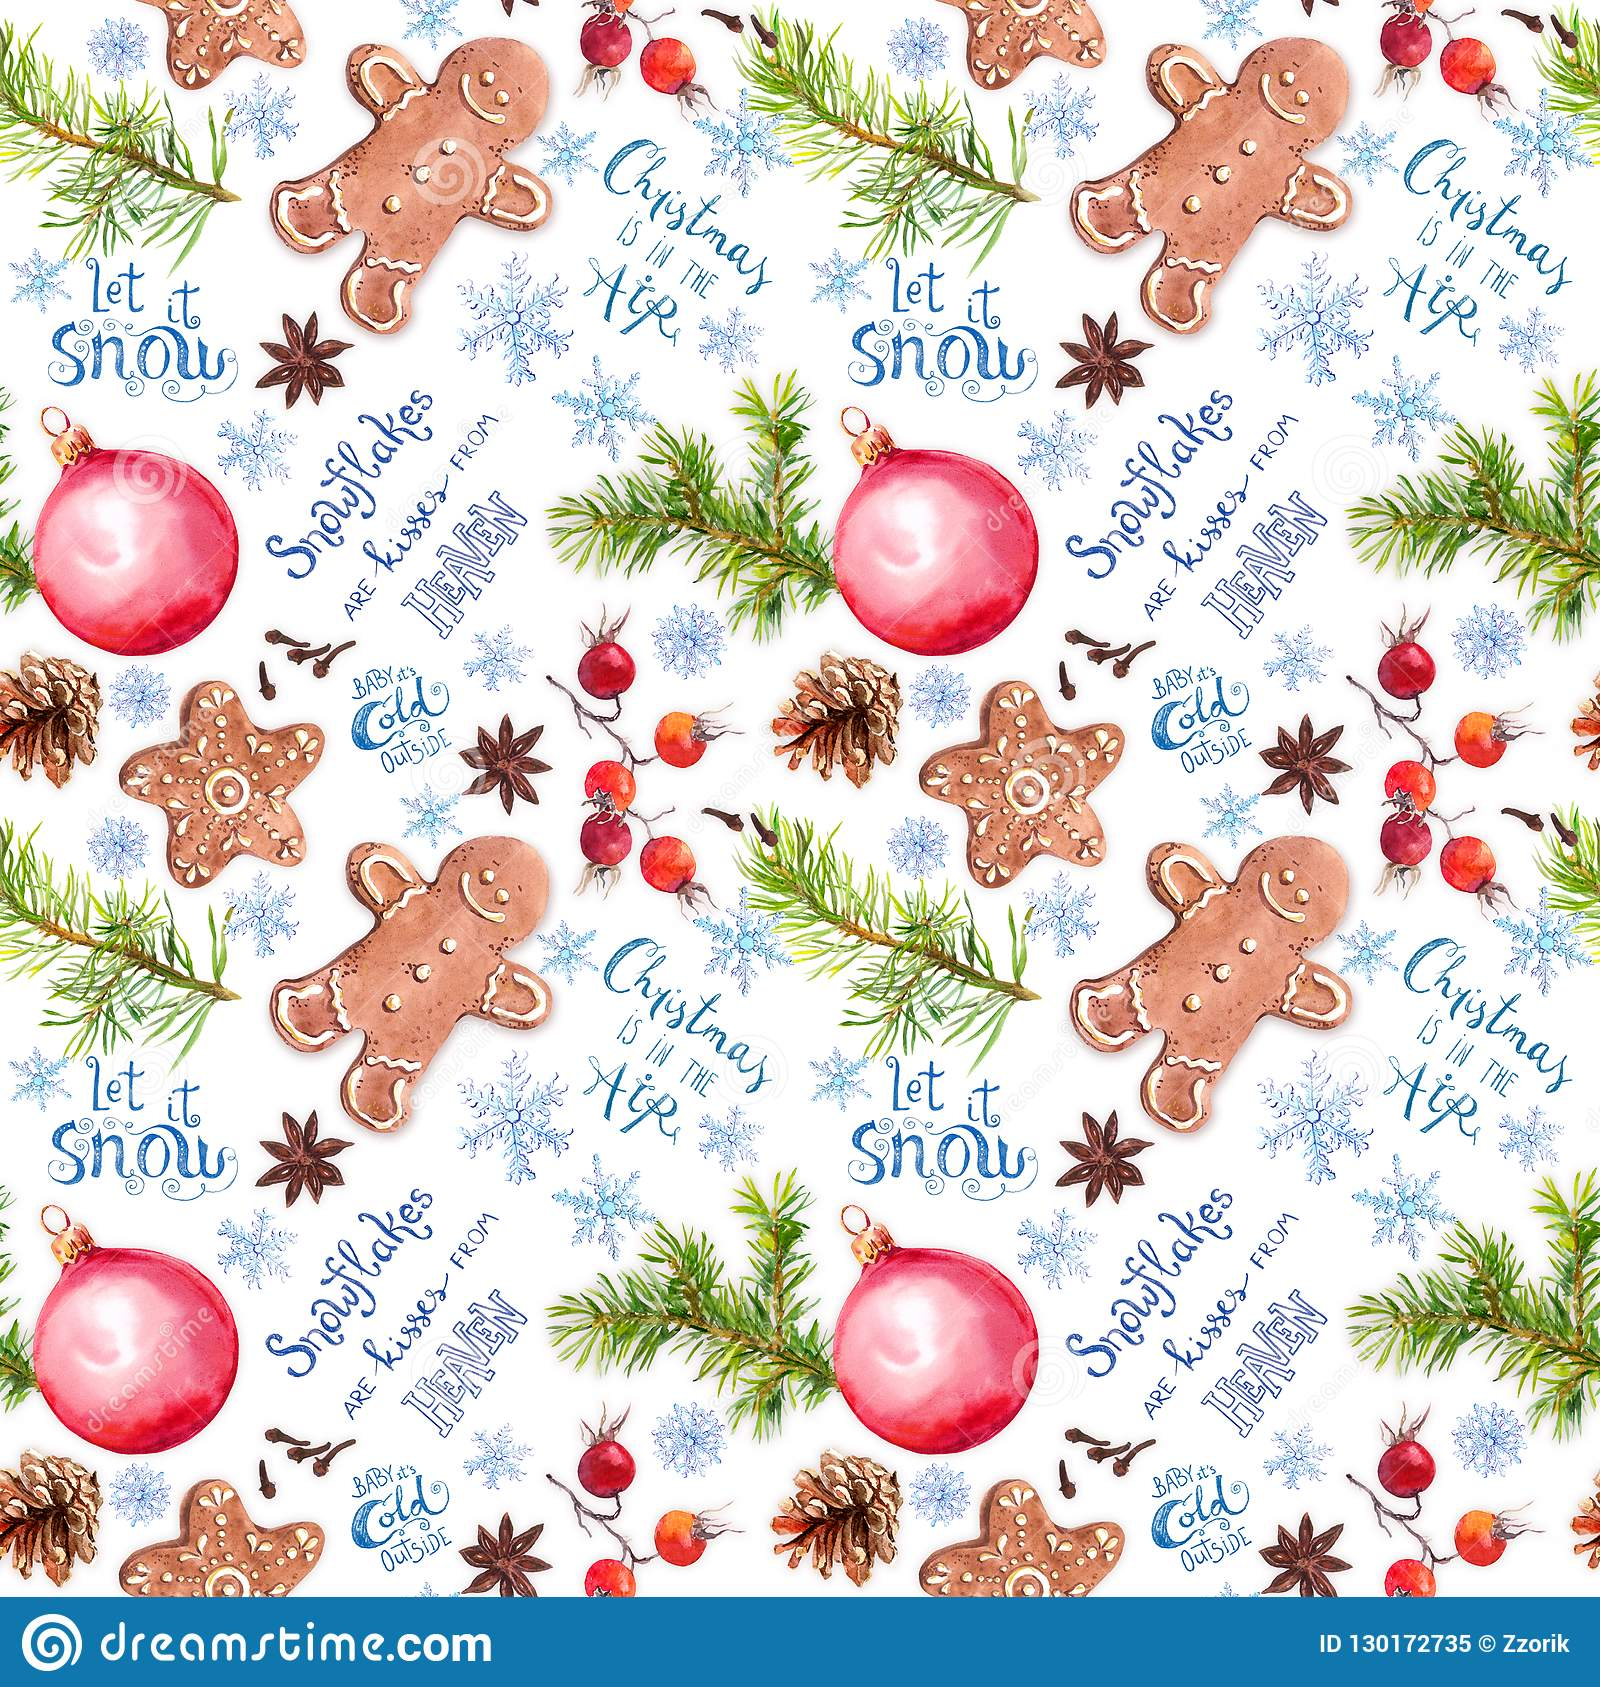 Christmas Tree Branches Ginger Cookies Baubles Snow Flakes And